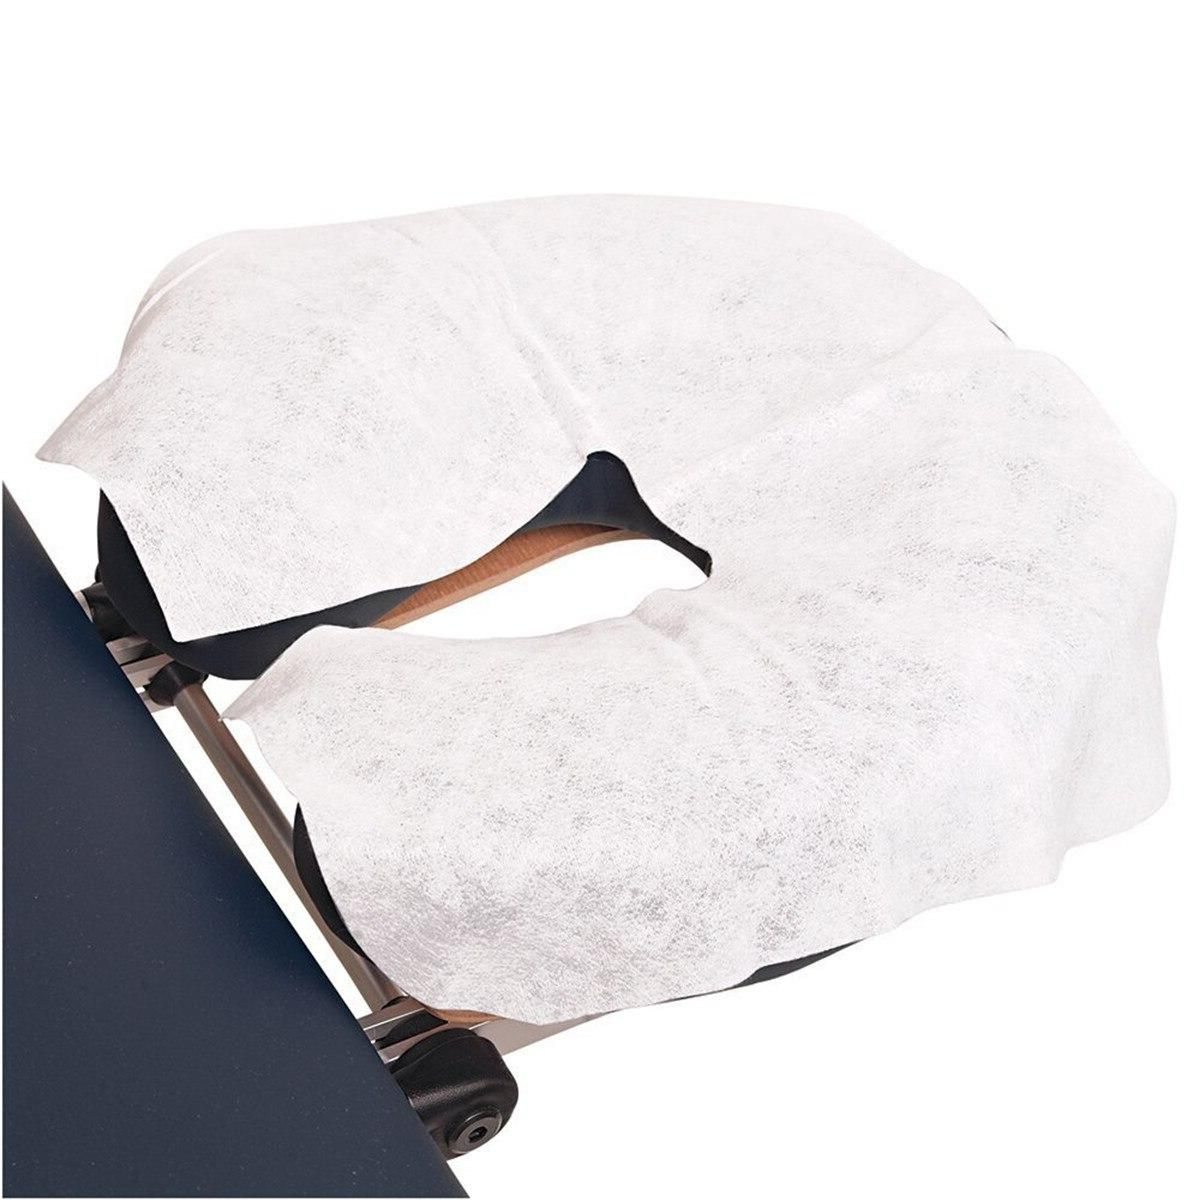 Disposable <font><b>Headrest</b></font> Paper Beauty Bed Face Cradle <font><b>Table</b></font> Rest Covers 100Pcs